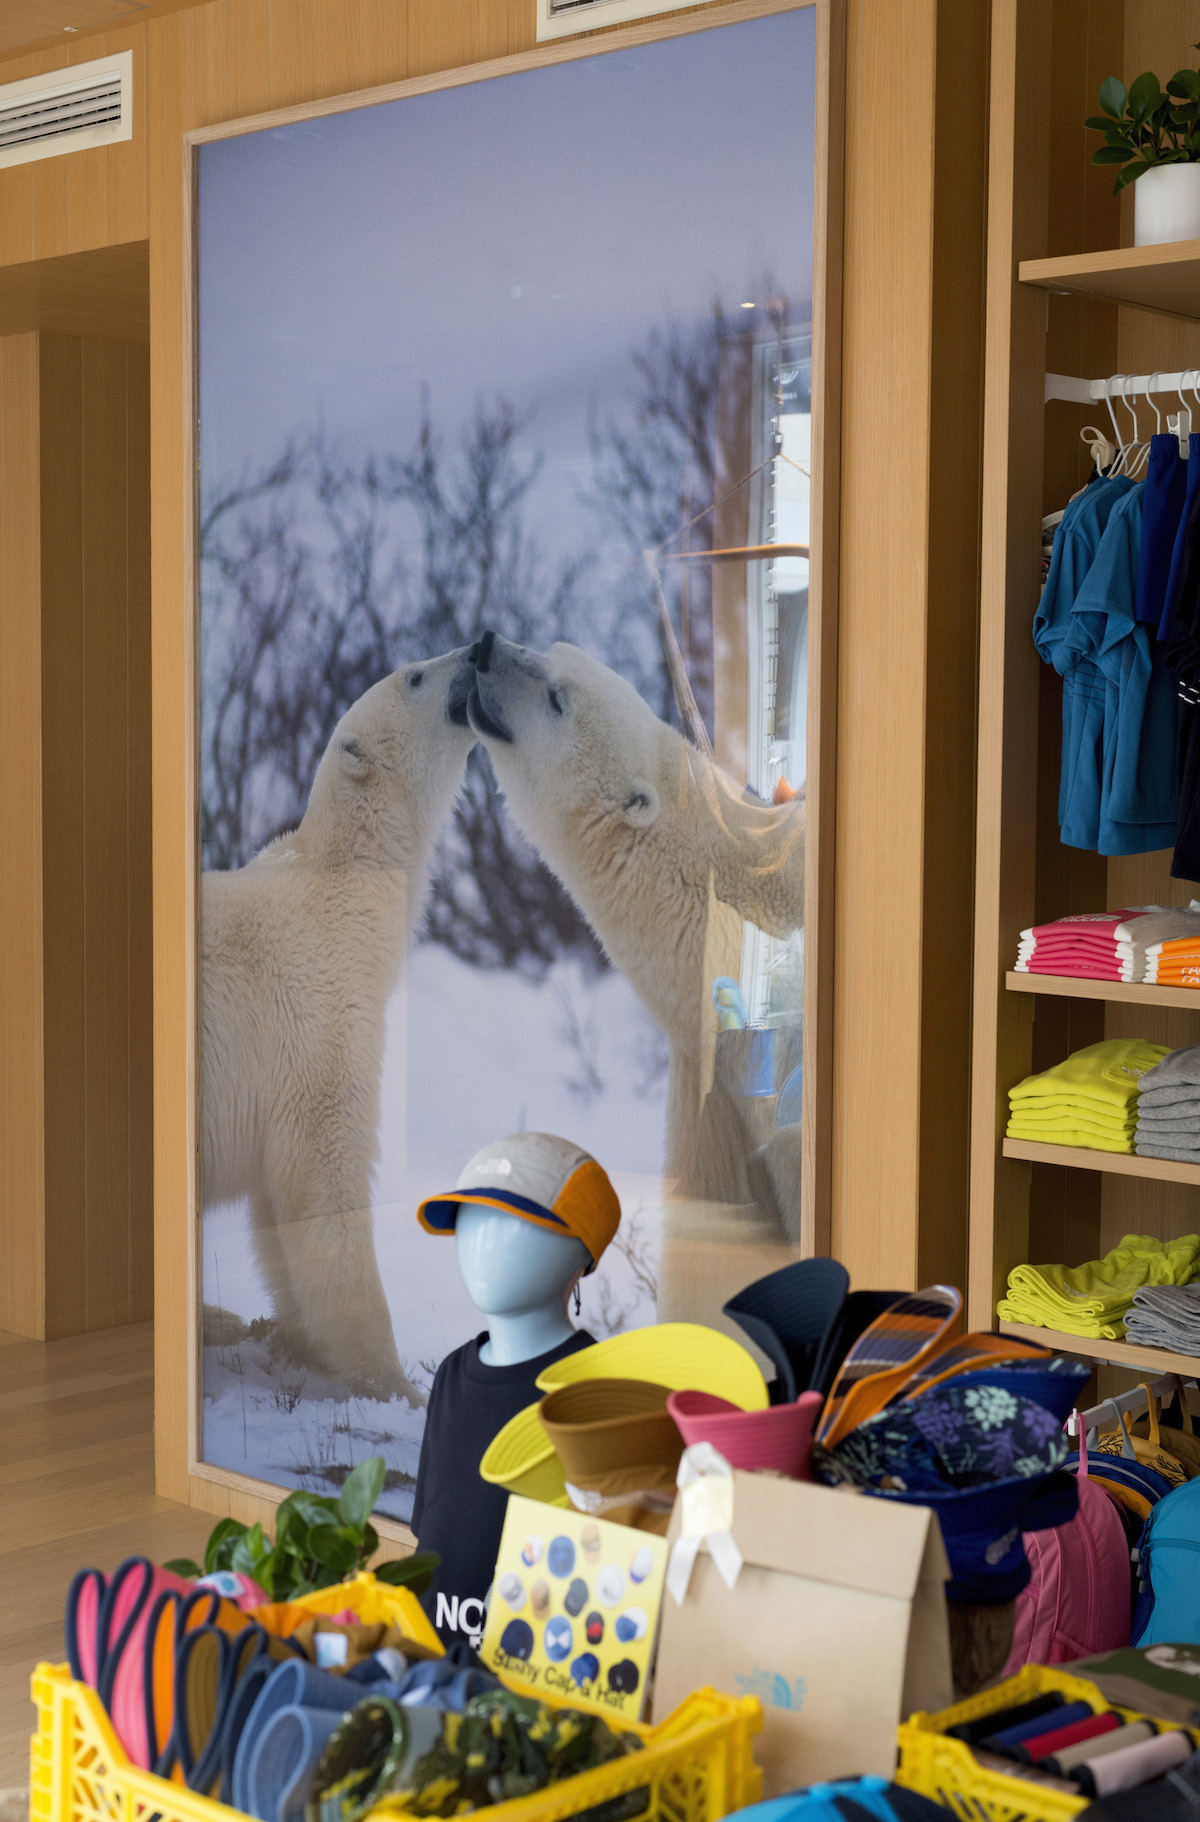 THE NORTH FACE kidsでの展示風景